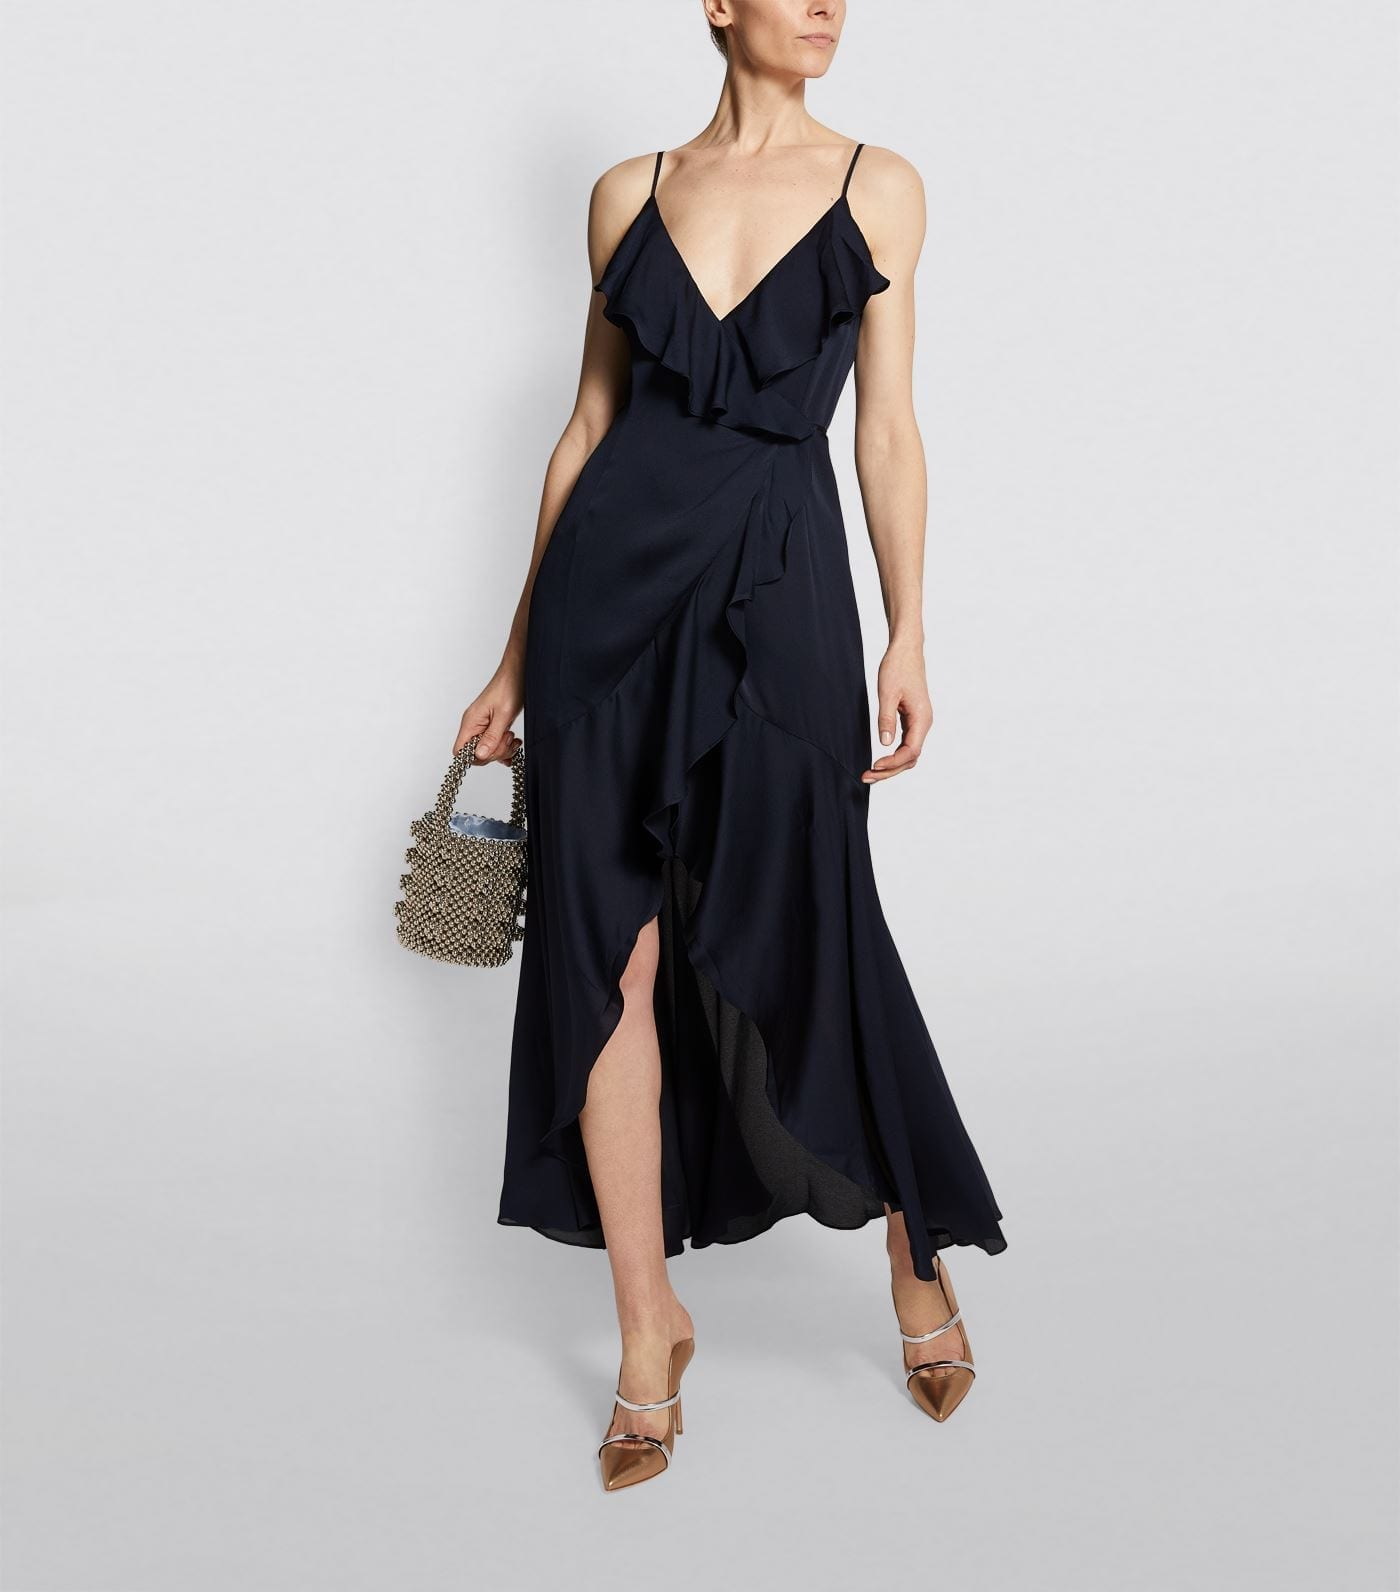 SHONA JOY Bias Frill Wrap Dress